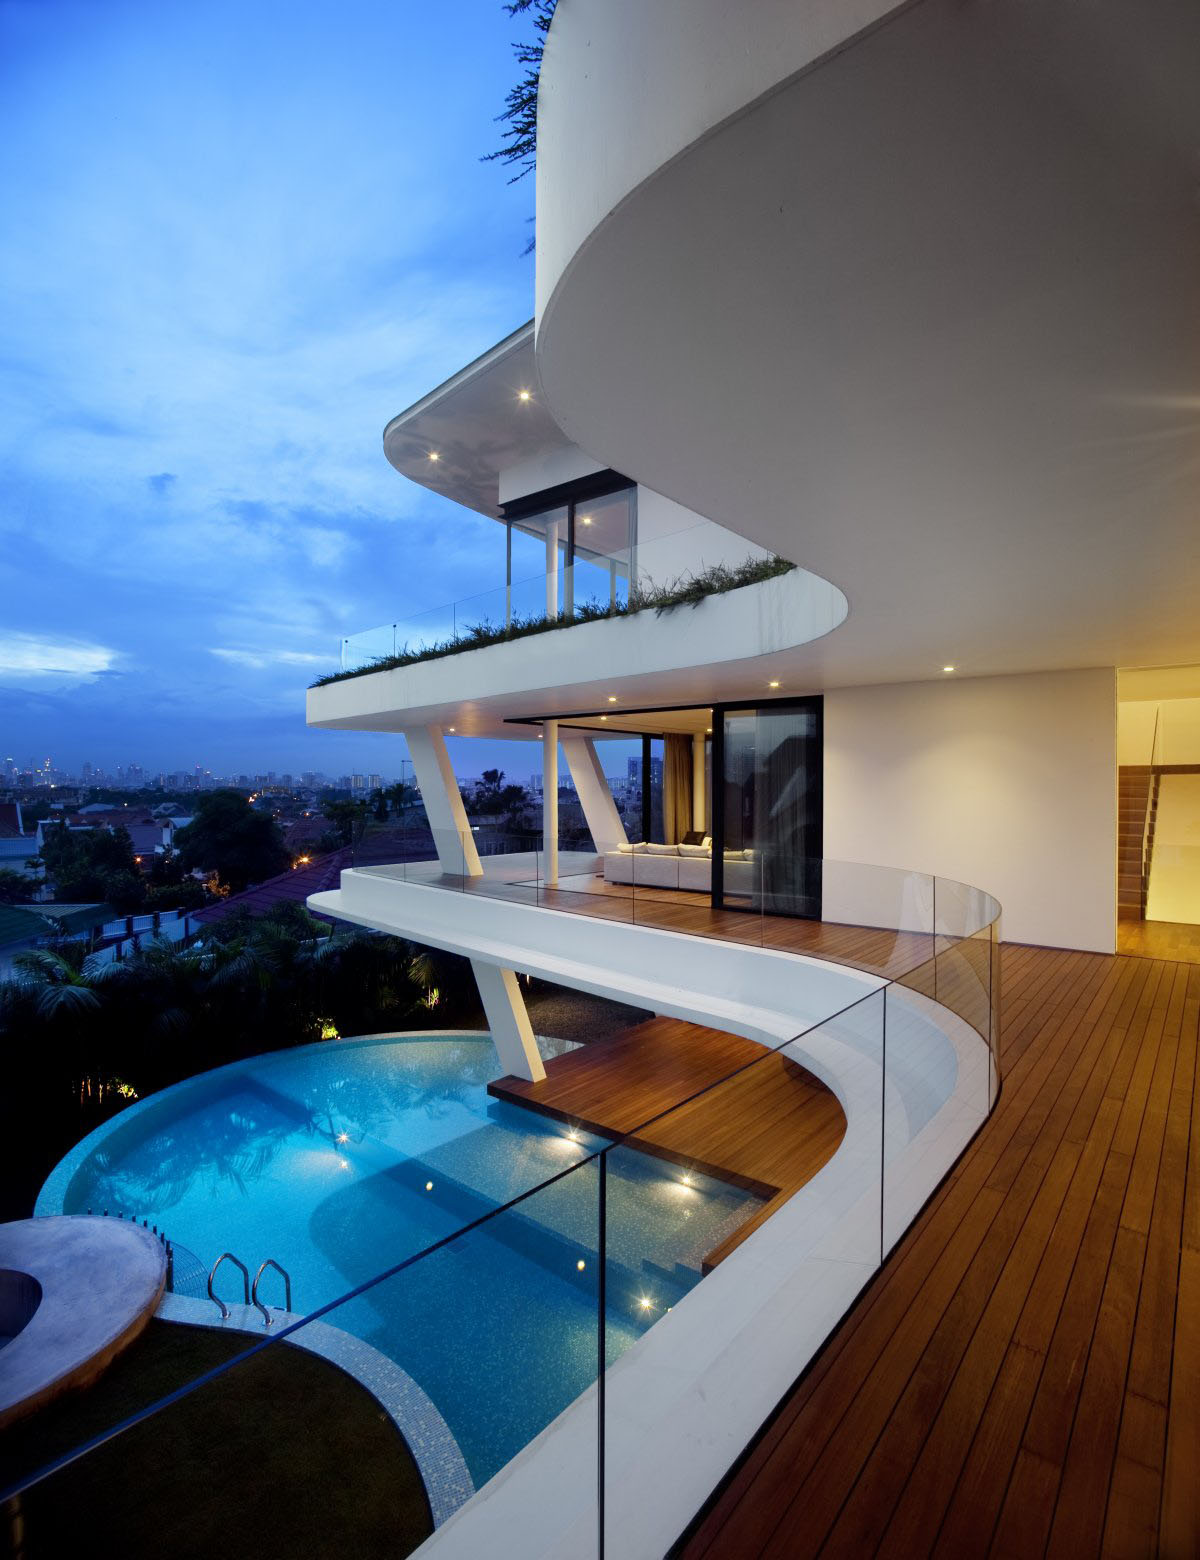 yacht house design in singapore idesignarch interior design rh idesignarch com  white house yacht design